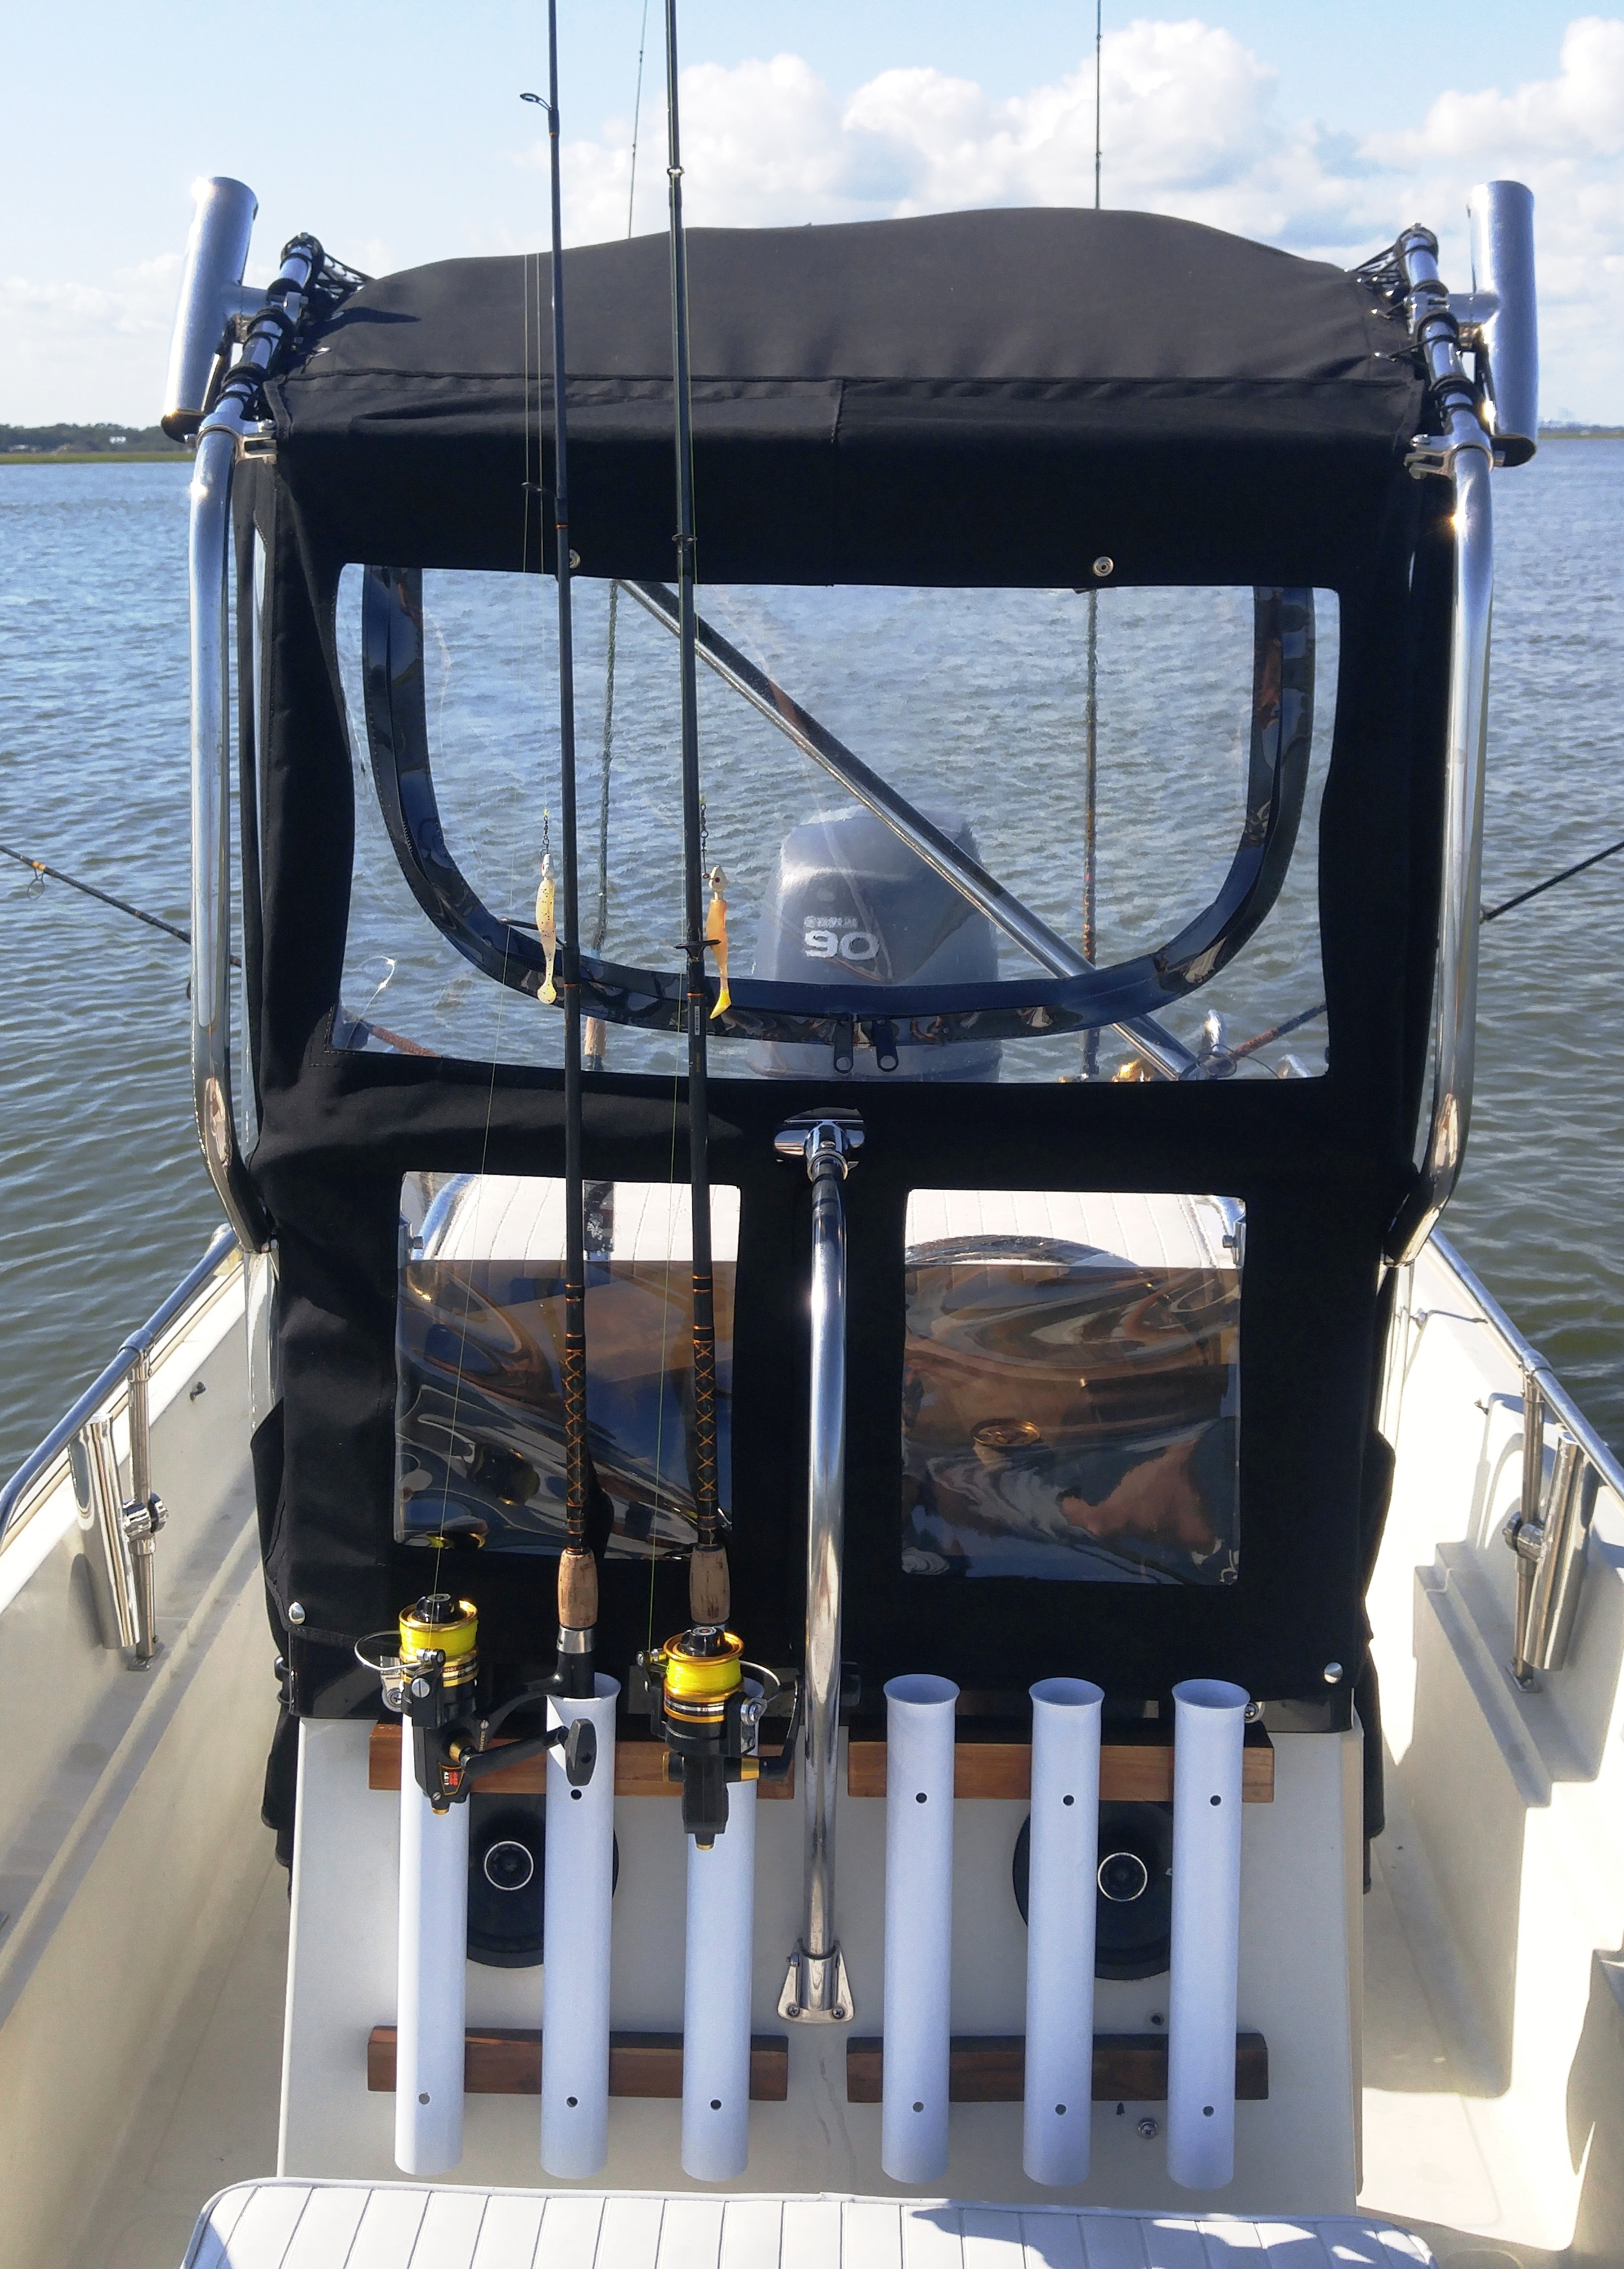 Montauk T Topless 2 Spray Shield Out fishing on the ICW